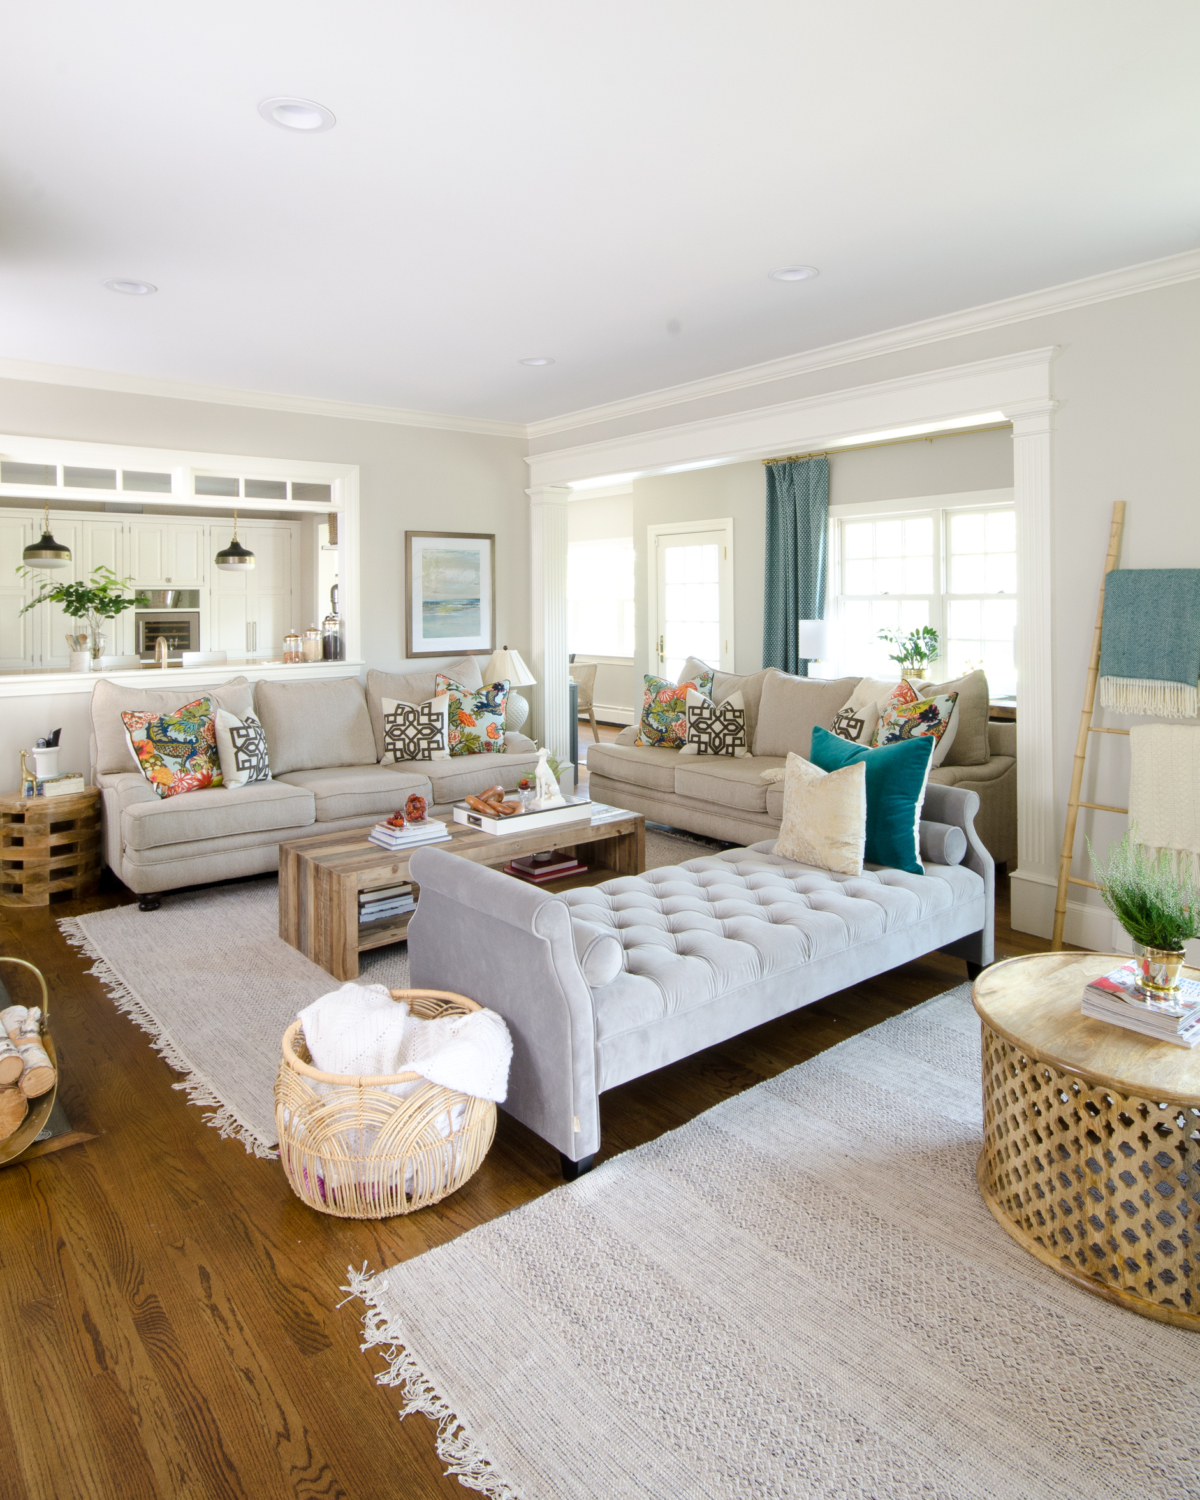 Beautiful neutral family room with pops of color and wood accents. Backless sofa divides the long room into two seating areas. Nice mix of traditional and rustic styles. Transom windows between the family room and kitchen.